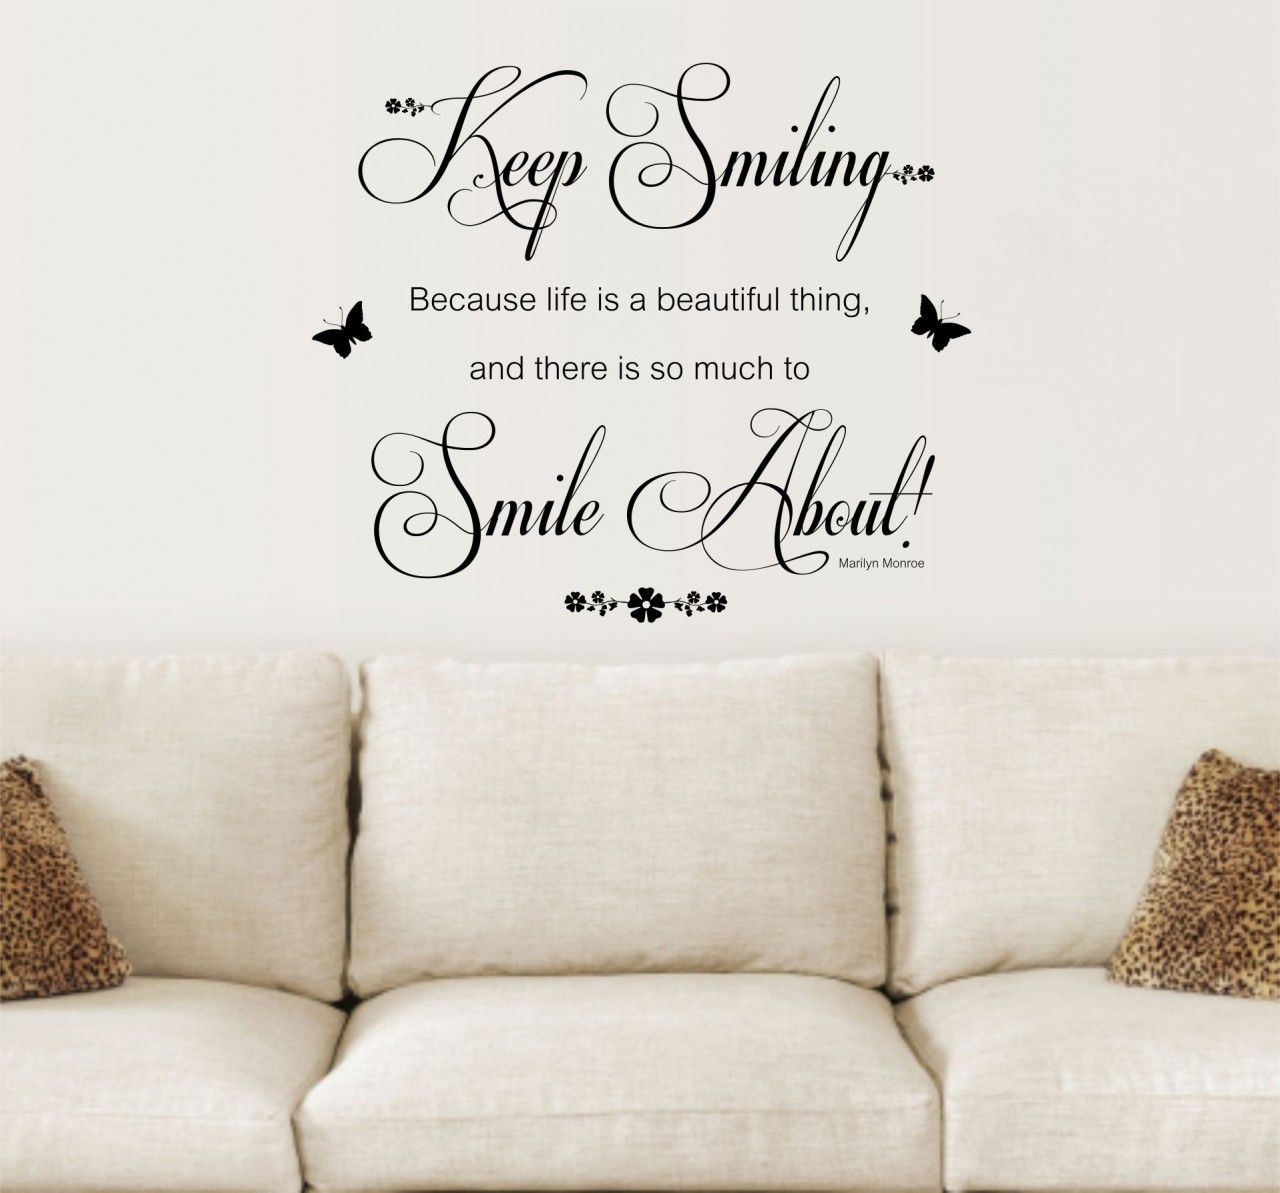 Trending Wall Art Quotes Decals for Home Decor My new room